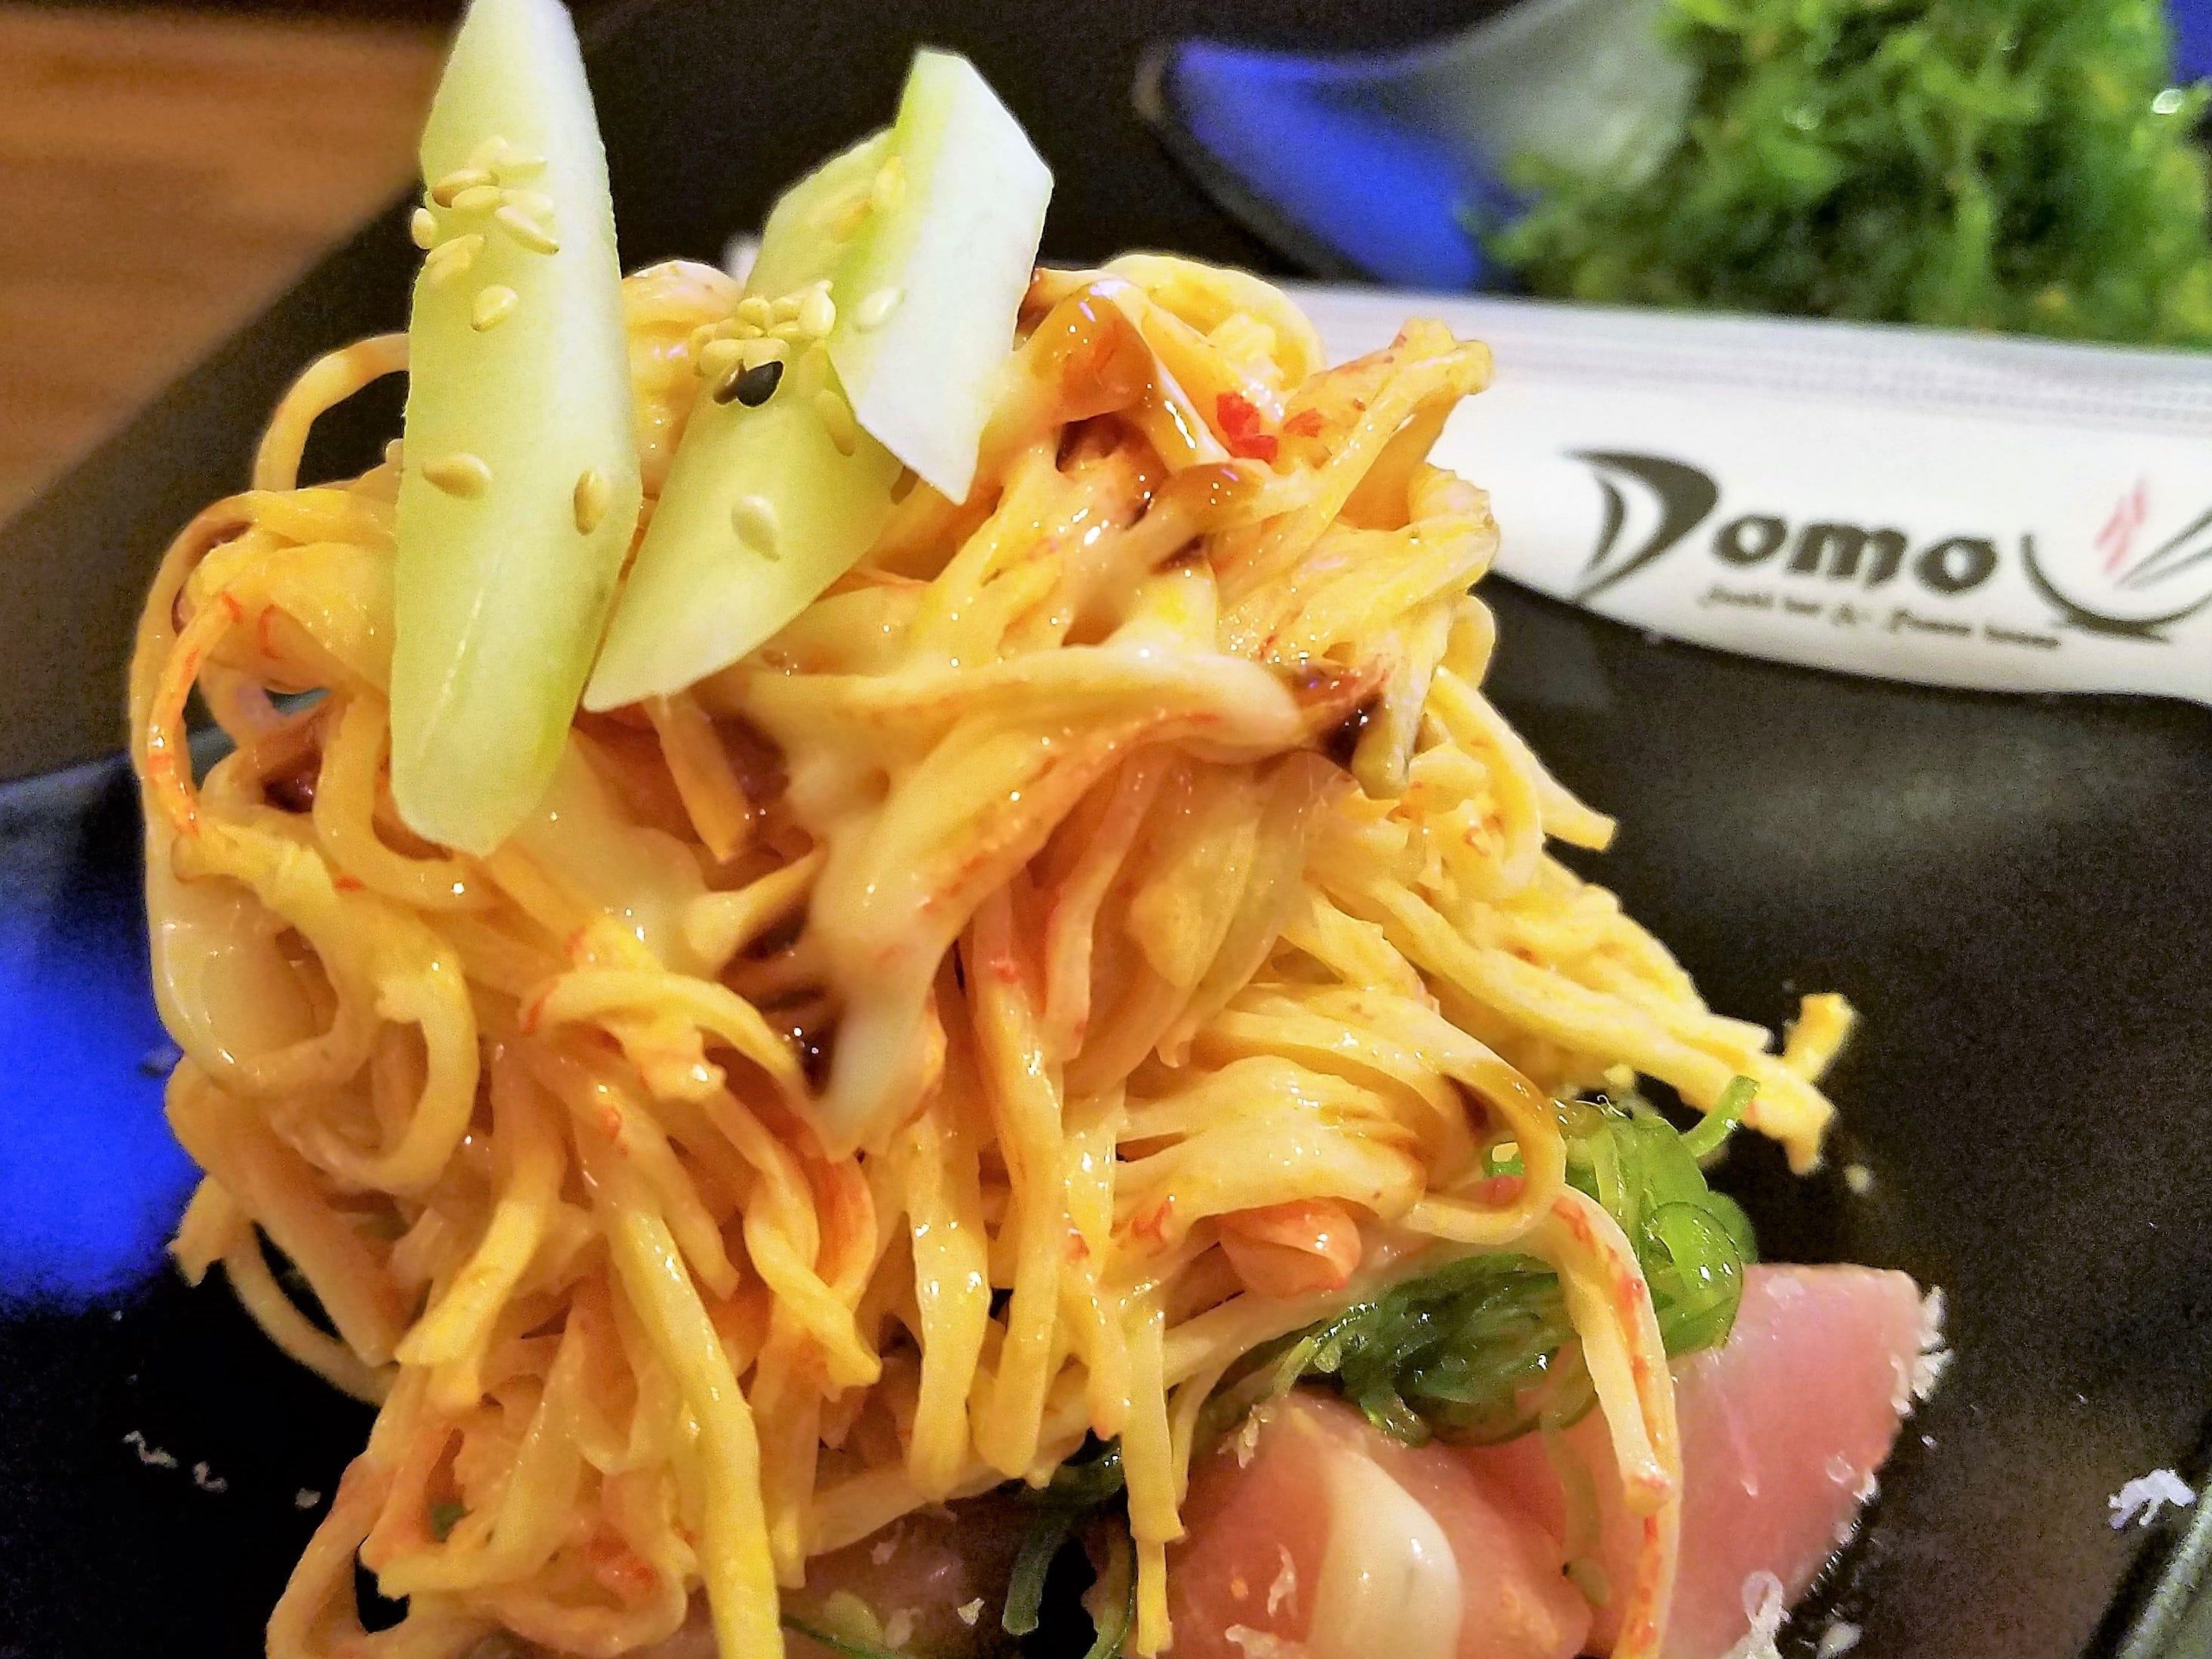 The Domo Salad--diced fresh tuna, spicy crab, and seaweed salad with cucumber and a sweet soy drizzle.